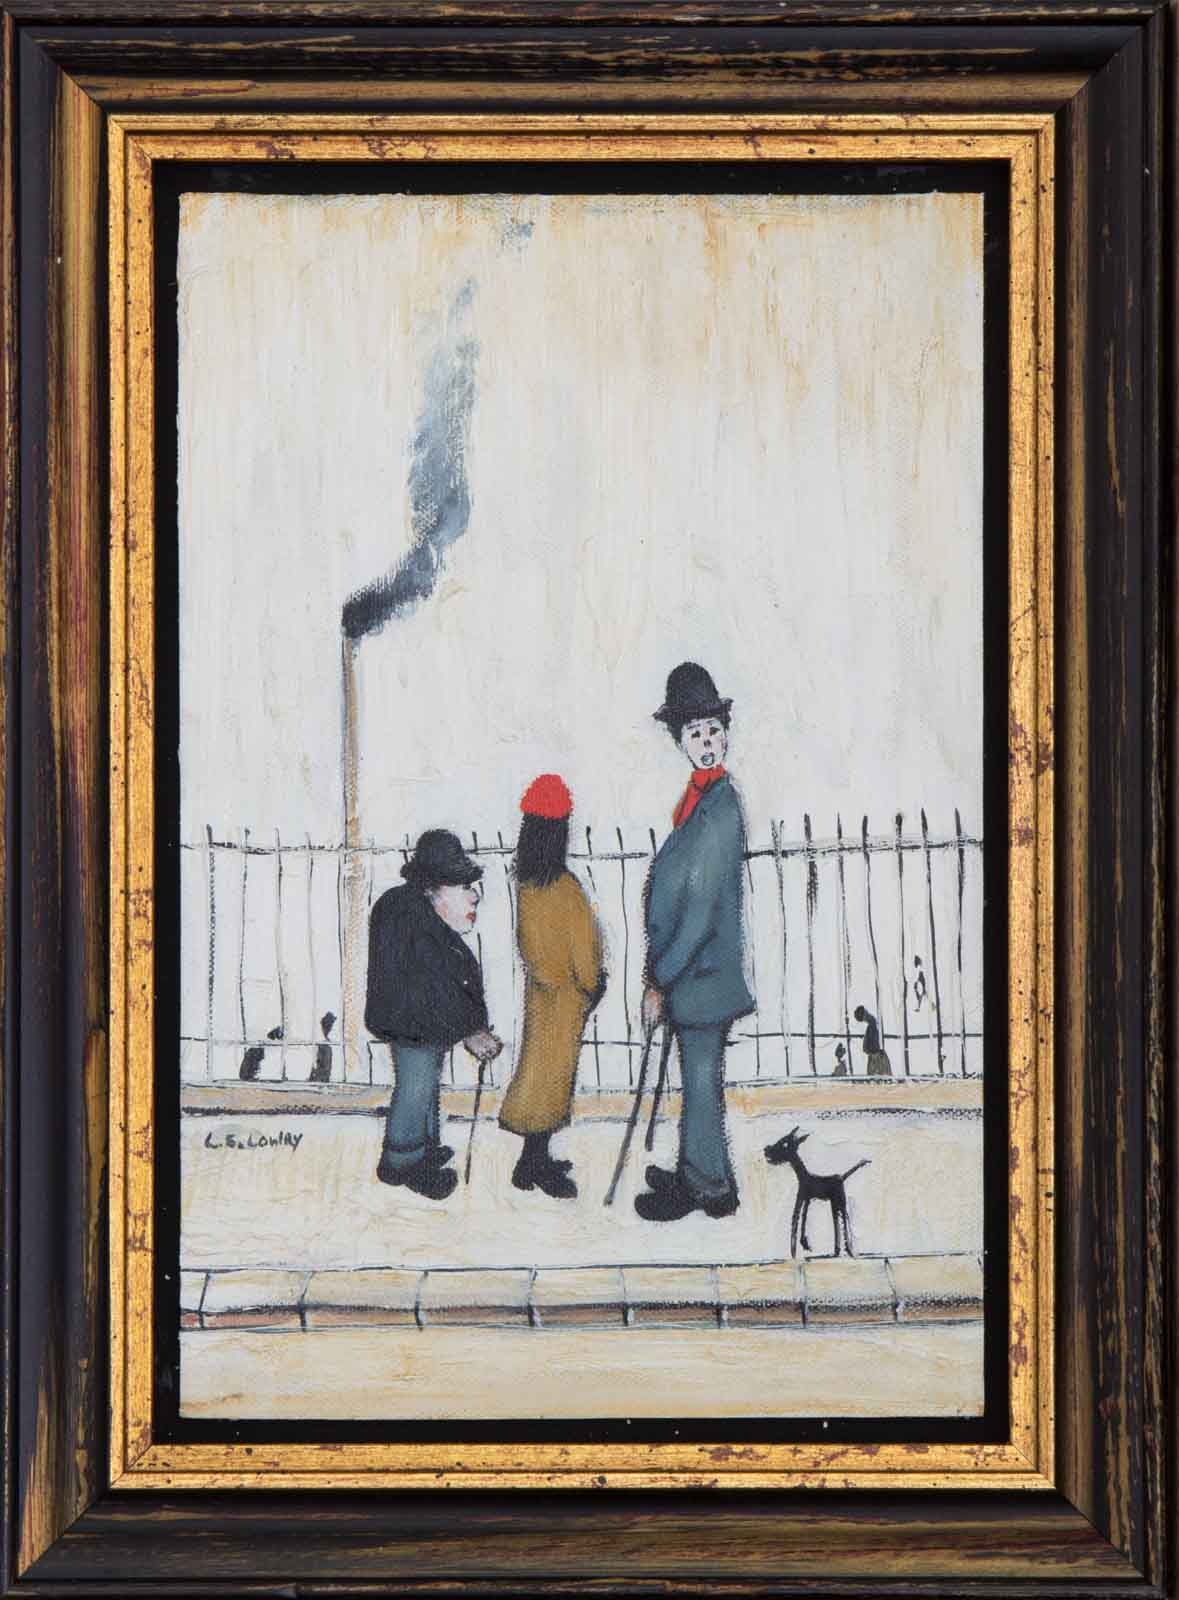 Bowler Hats after L.S Lowry, David Henty